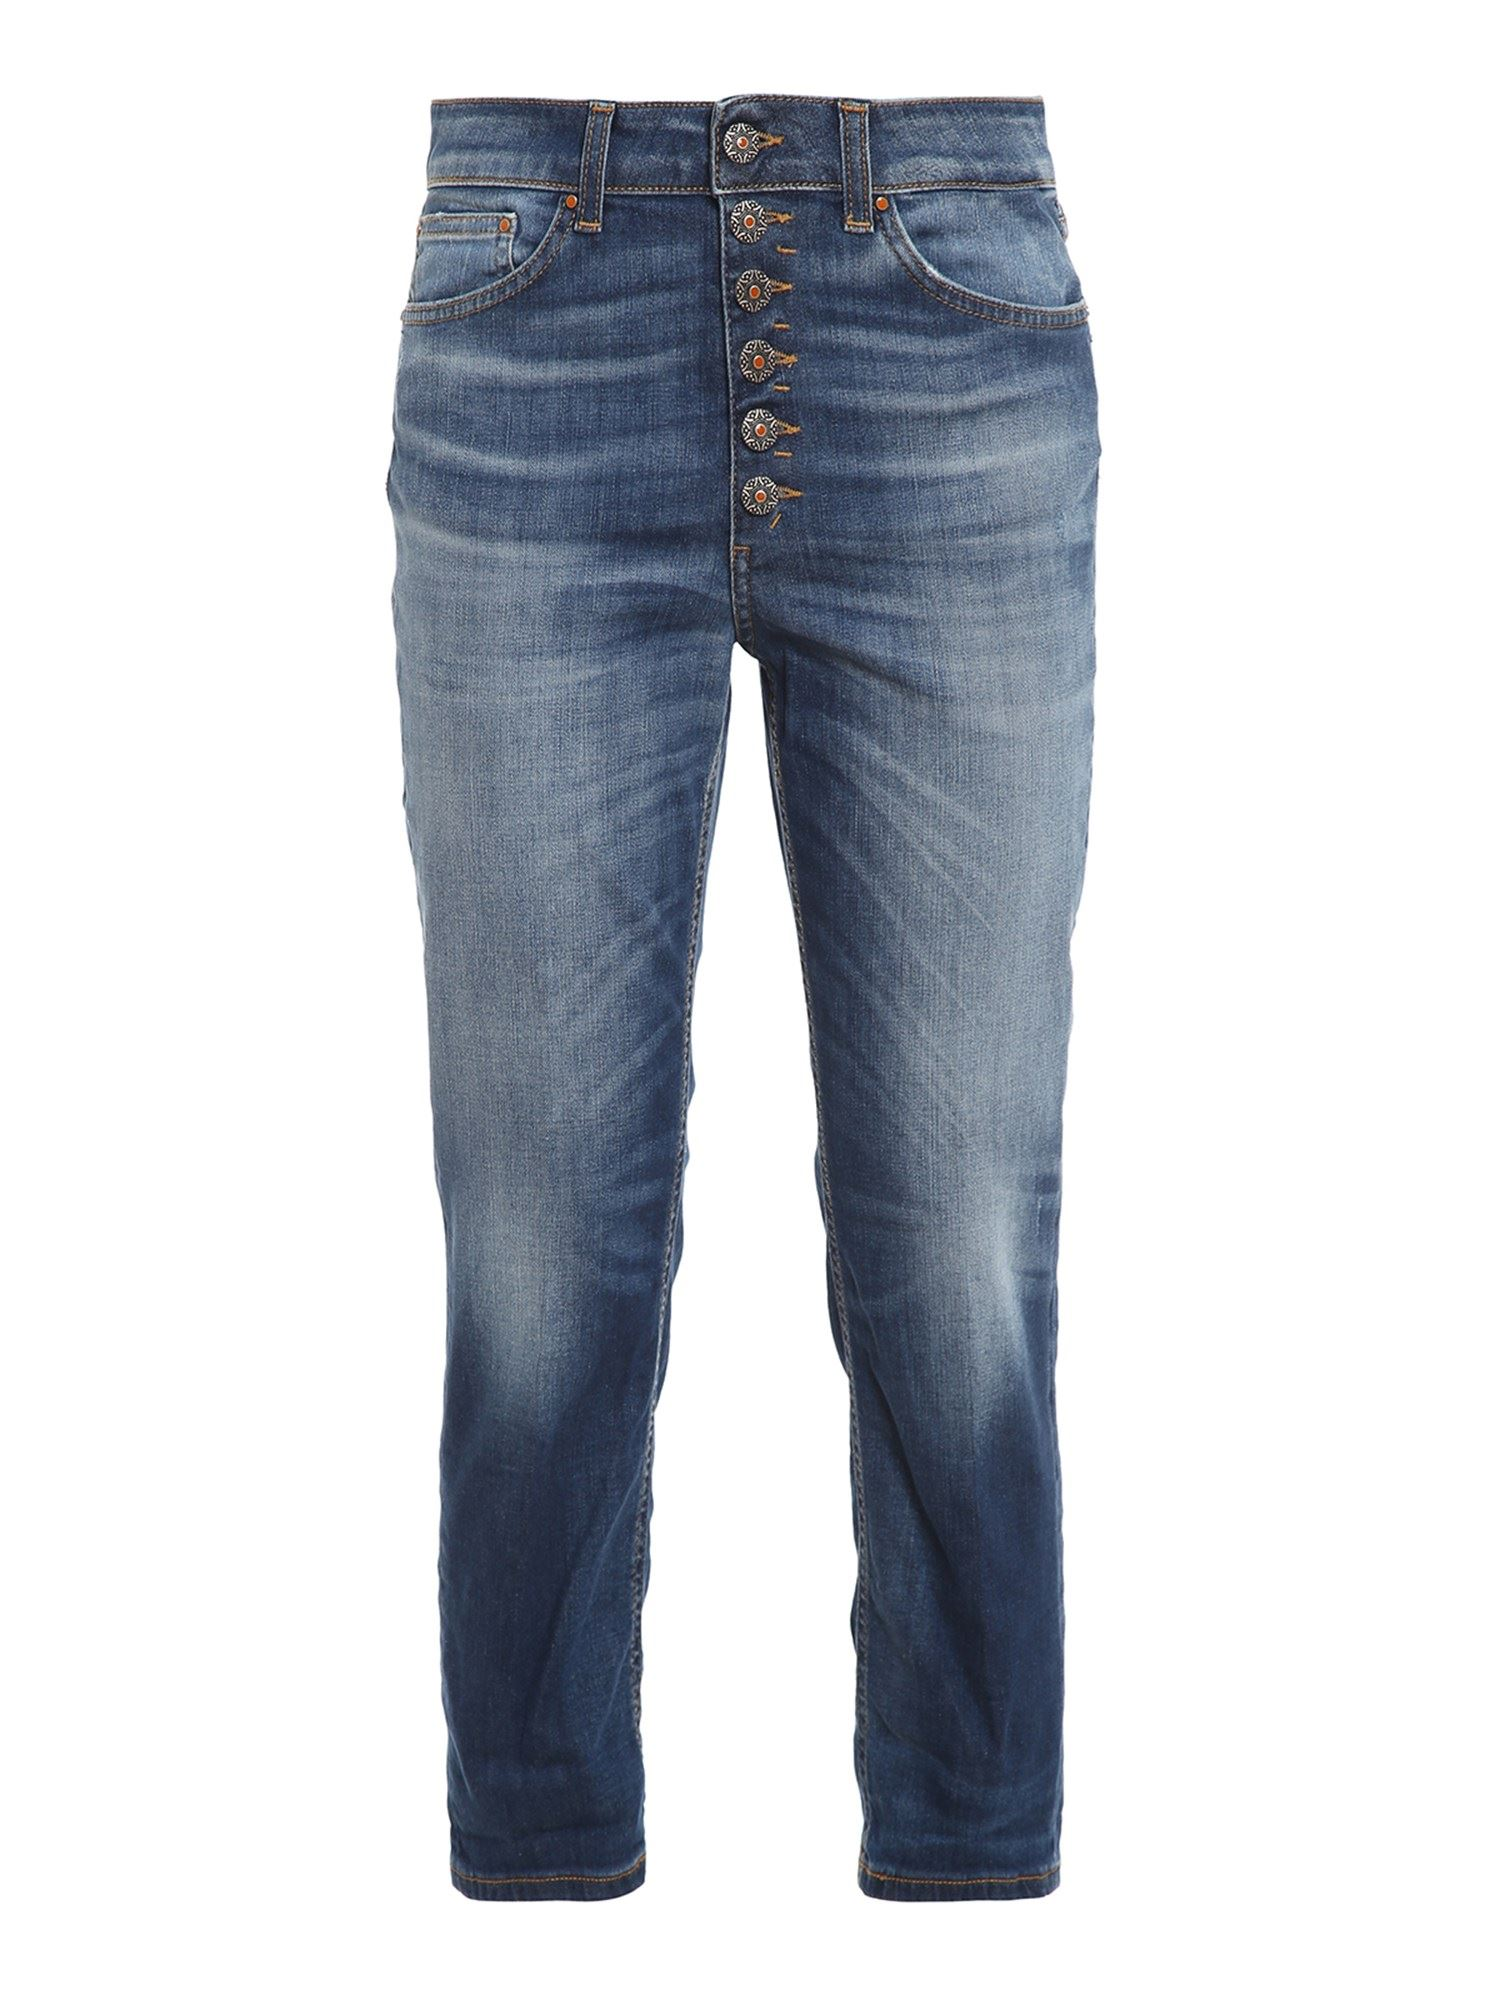 DONDUP KOONS GIOIELLO JEANS IN BLUE